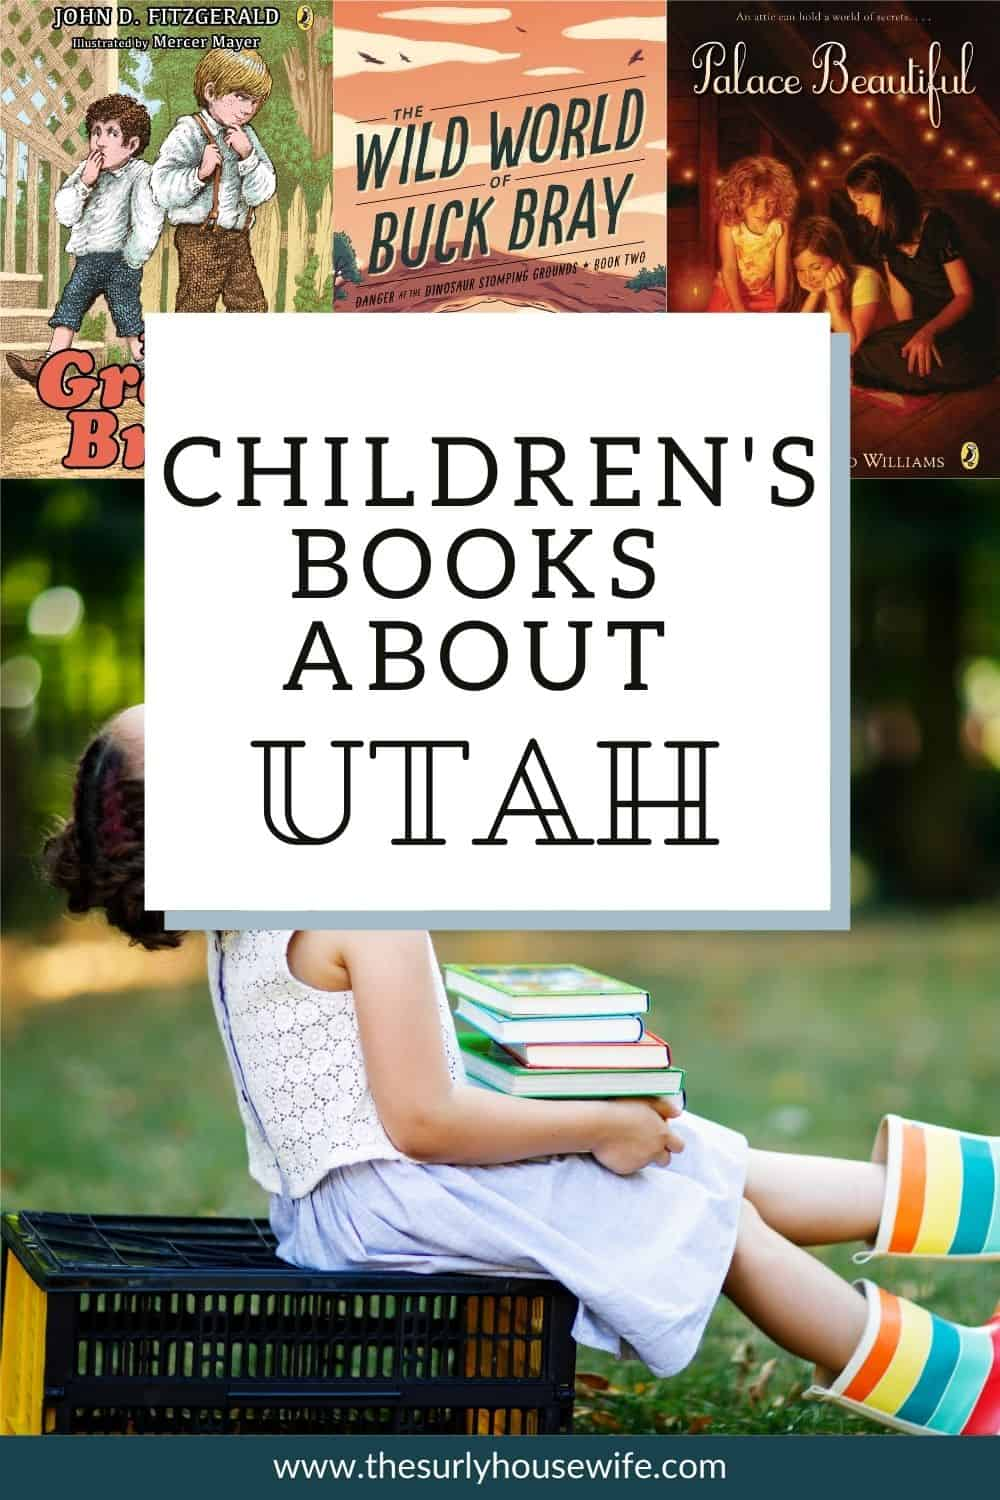 Looking for books about Utah? Don't miss this post for living books about Utah: including fiction, non-fiction, picture books, and chapter books!